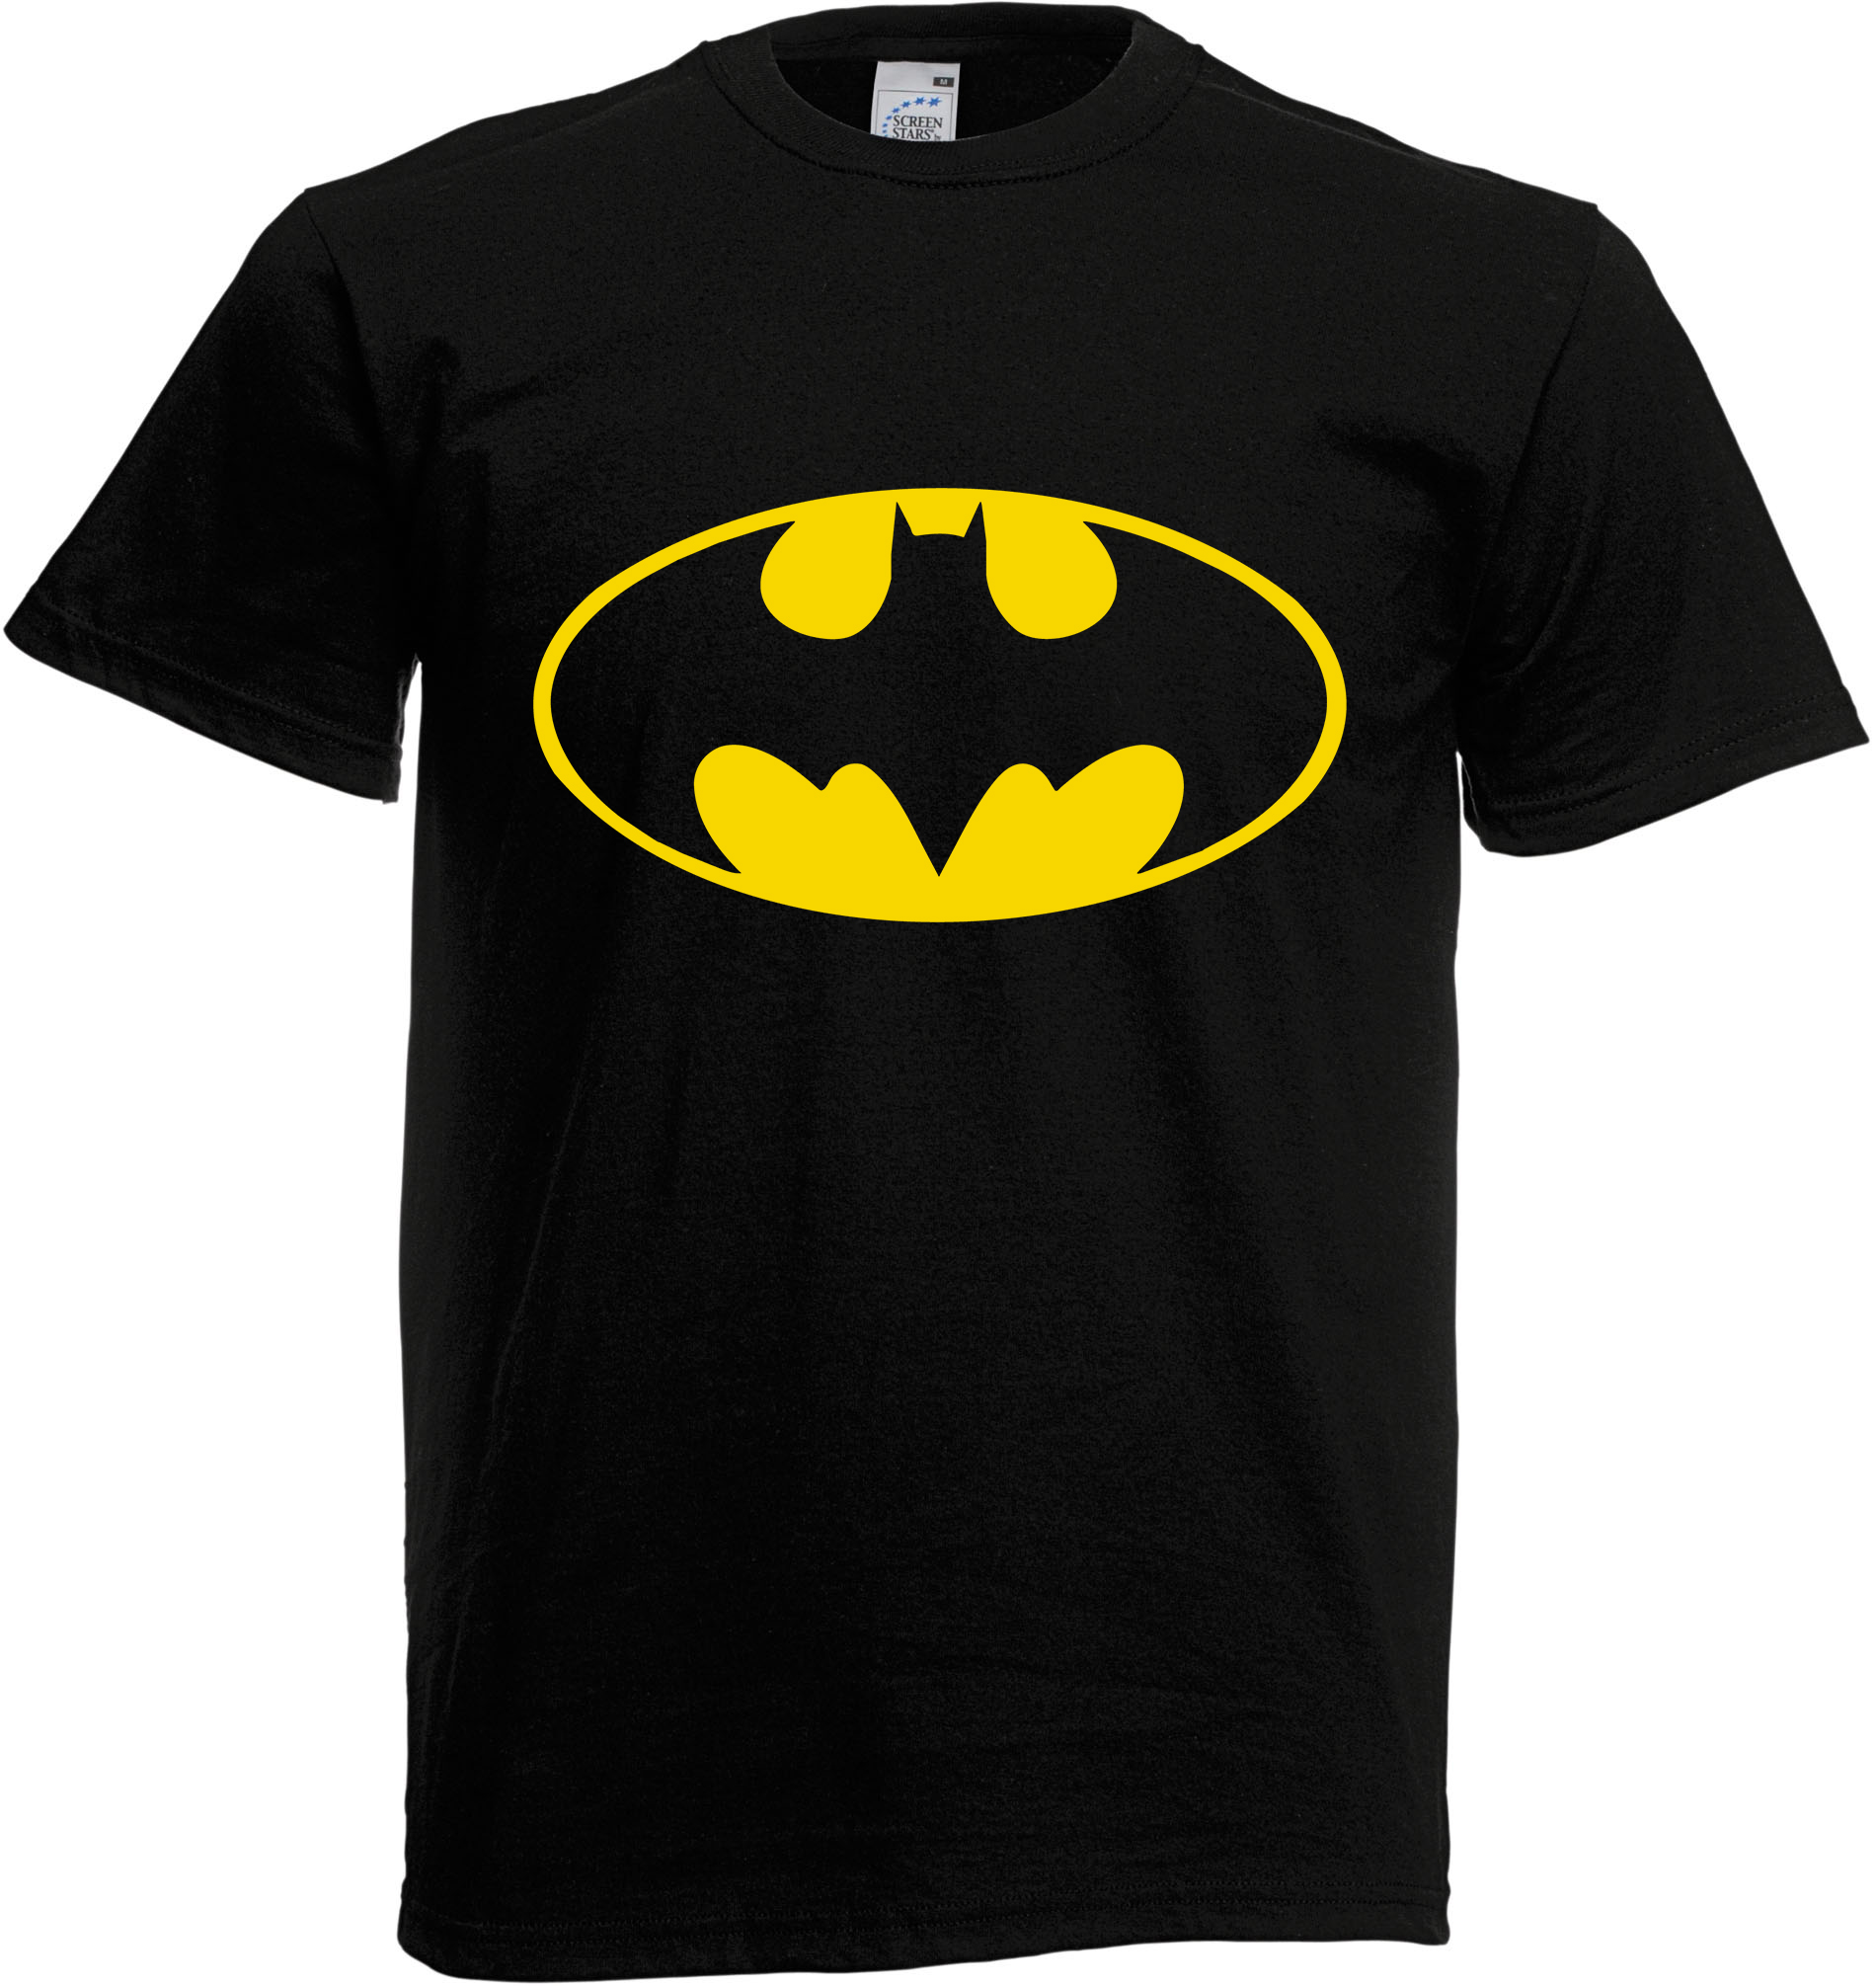 t shirt batman homme j 39 imprime comme j 39 aime. Black Bedroom Furniture Sets. Home Design Ideas